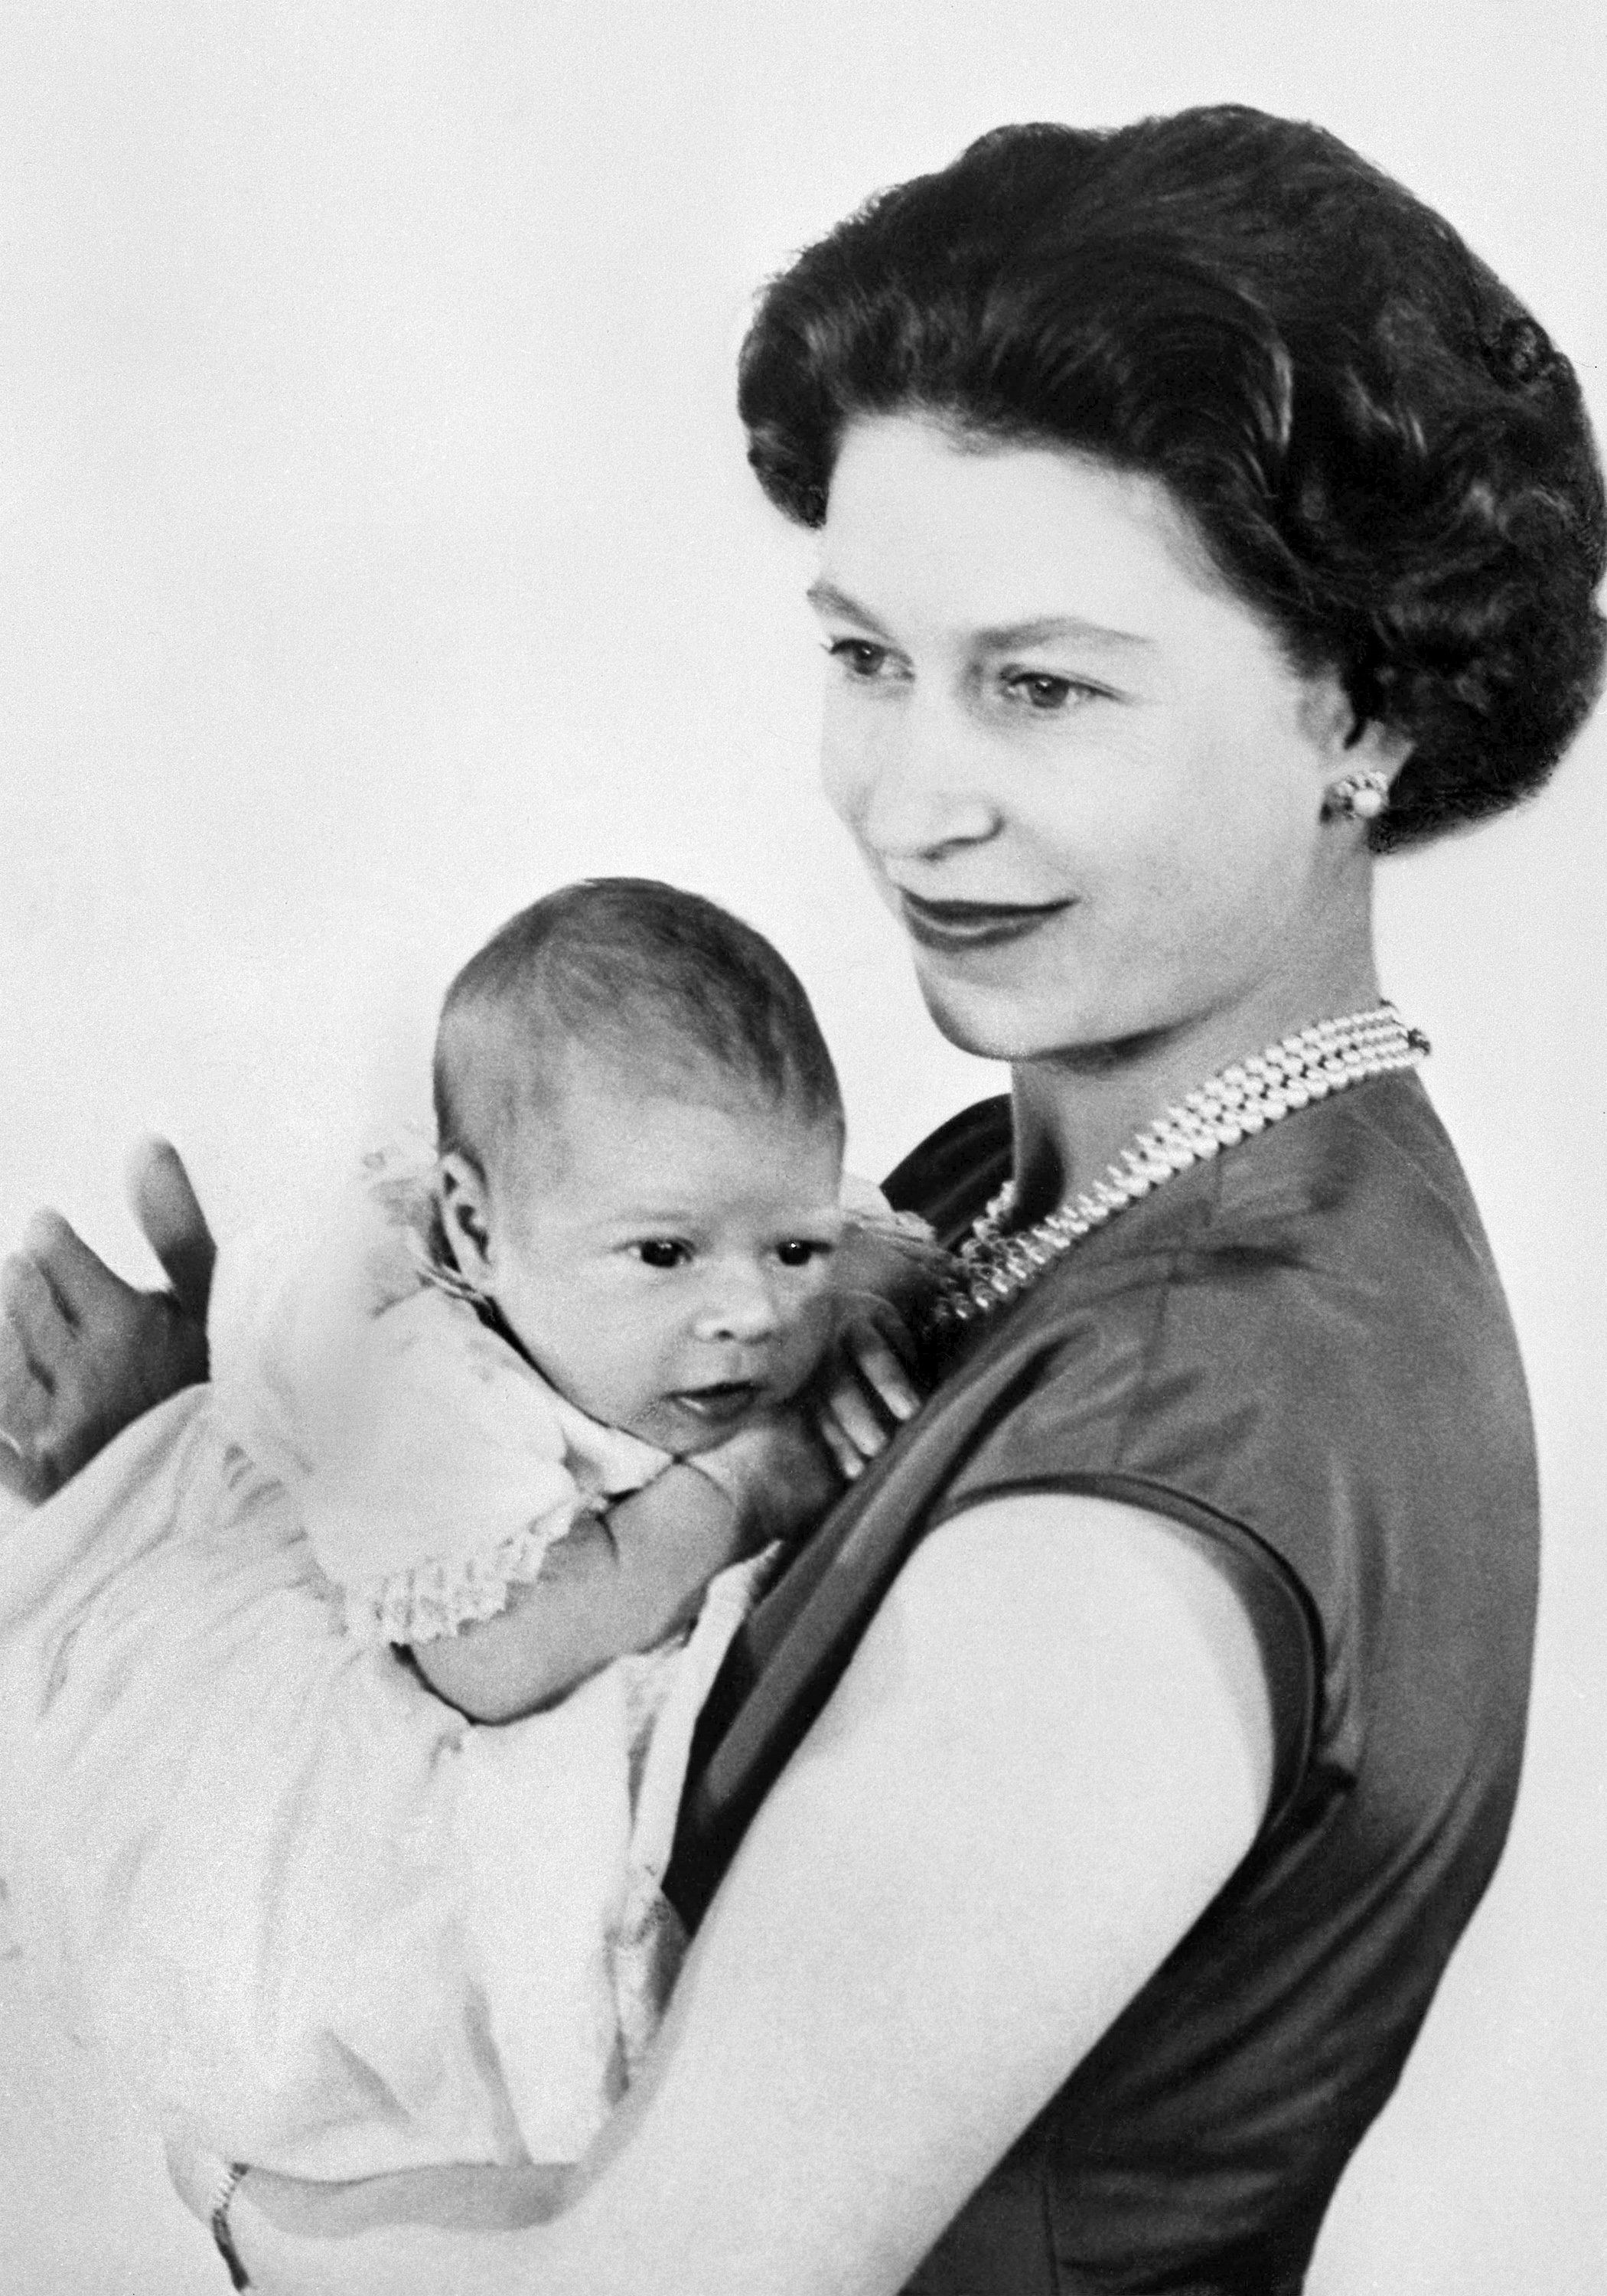 Seven years after her coronation,Elizabethwelcomed her third child,Prince Andrew.